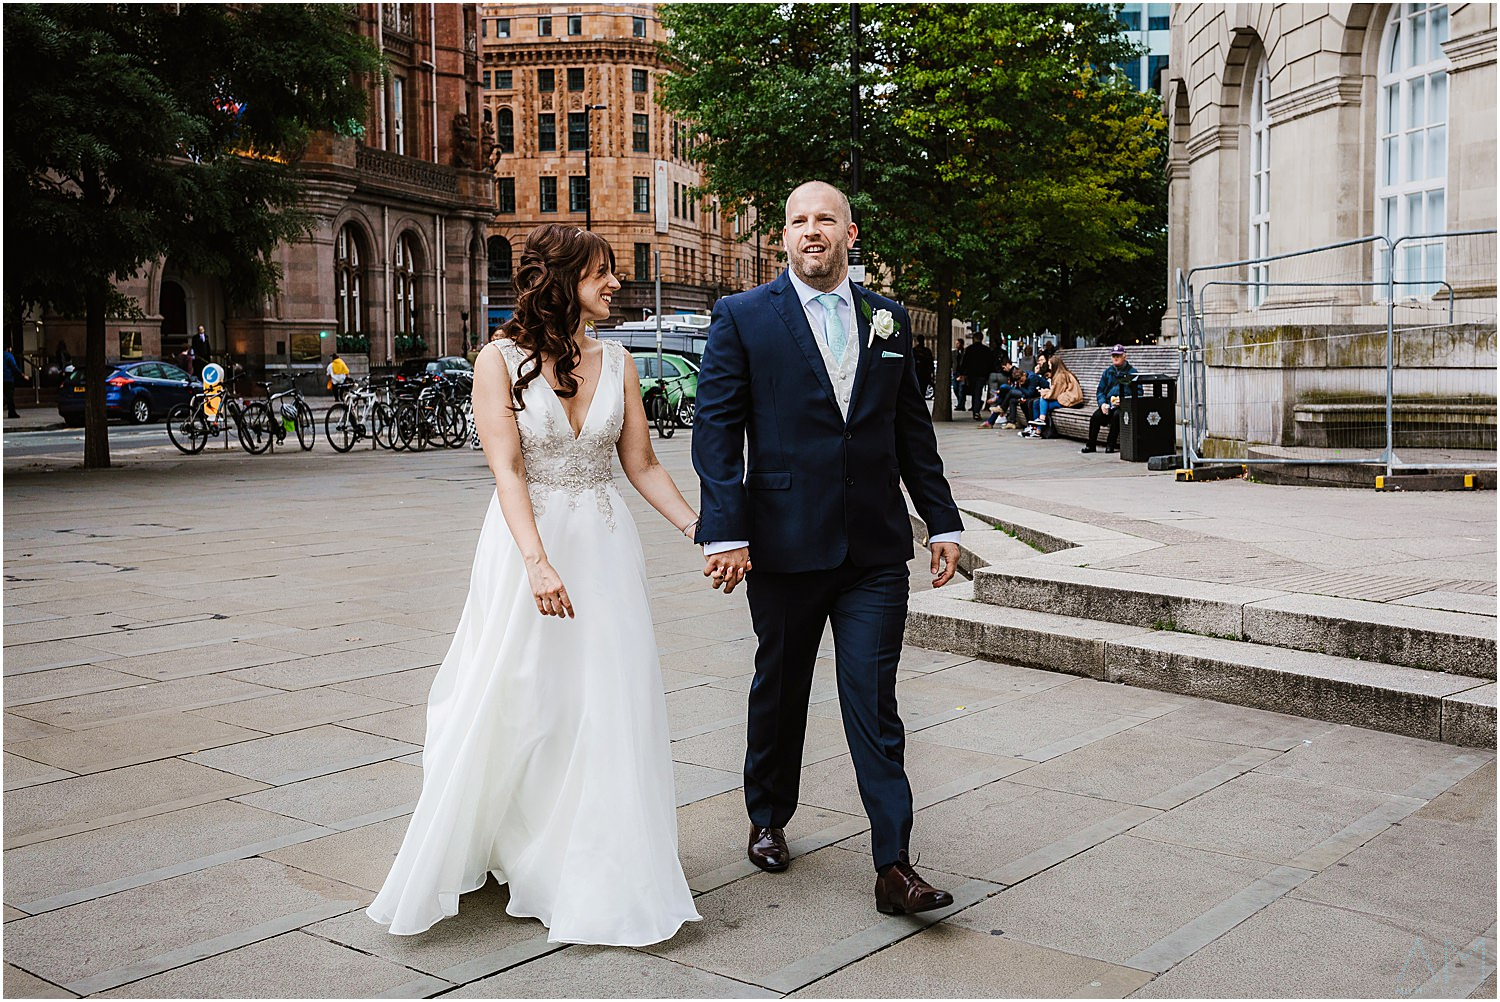 Bride and groom walking in Manchester